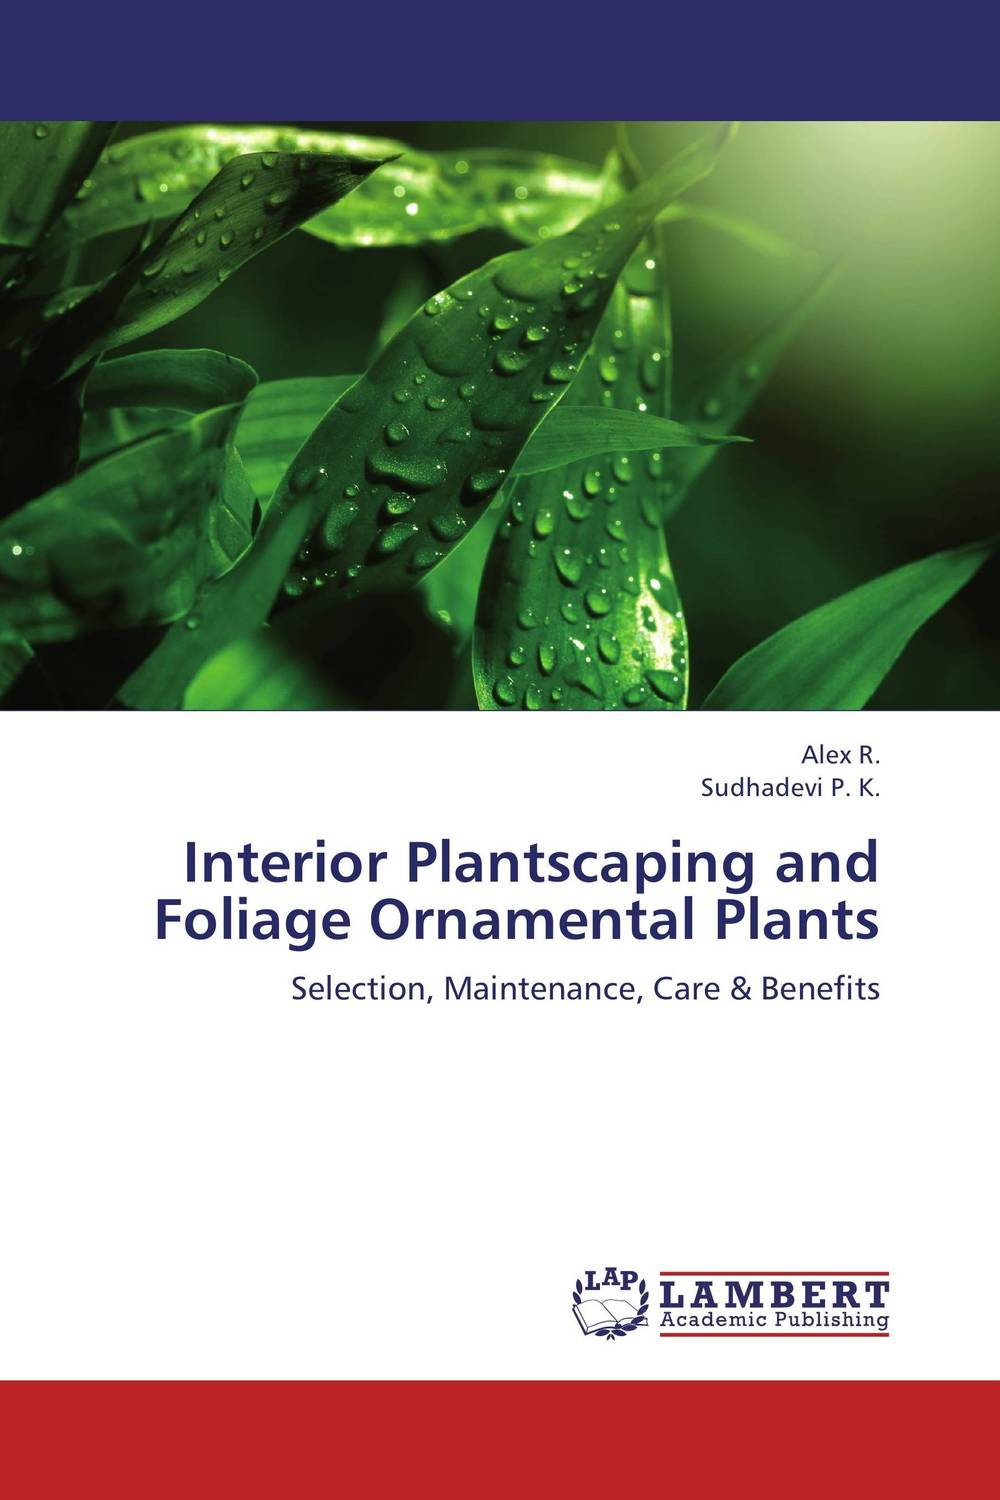 Interior Plantscaping and Foliage Ornamental Plants sourina mehryar division of interior spaces